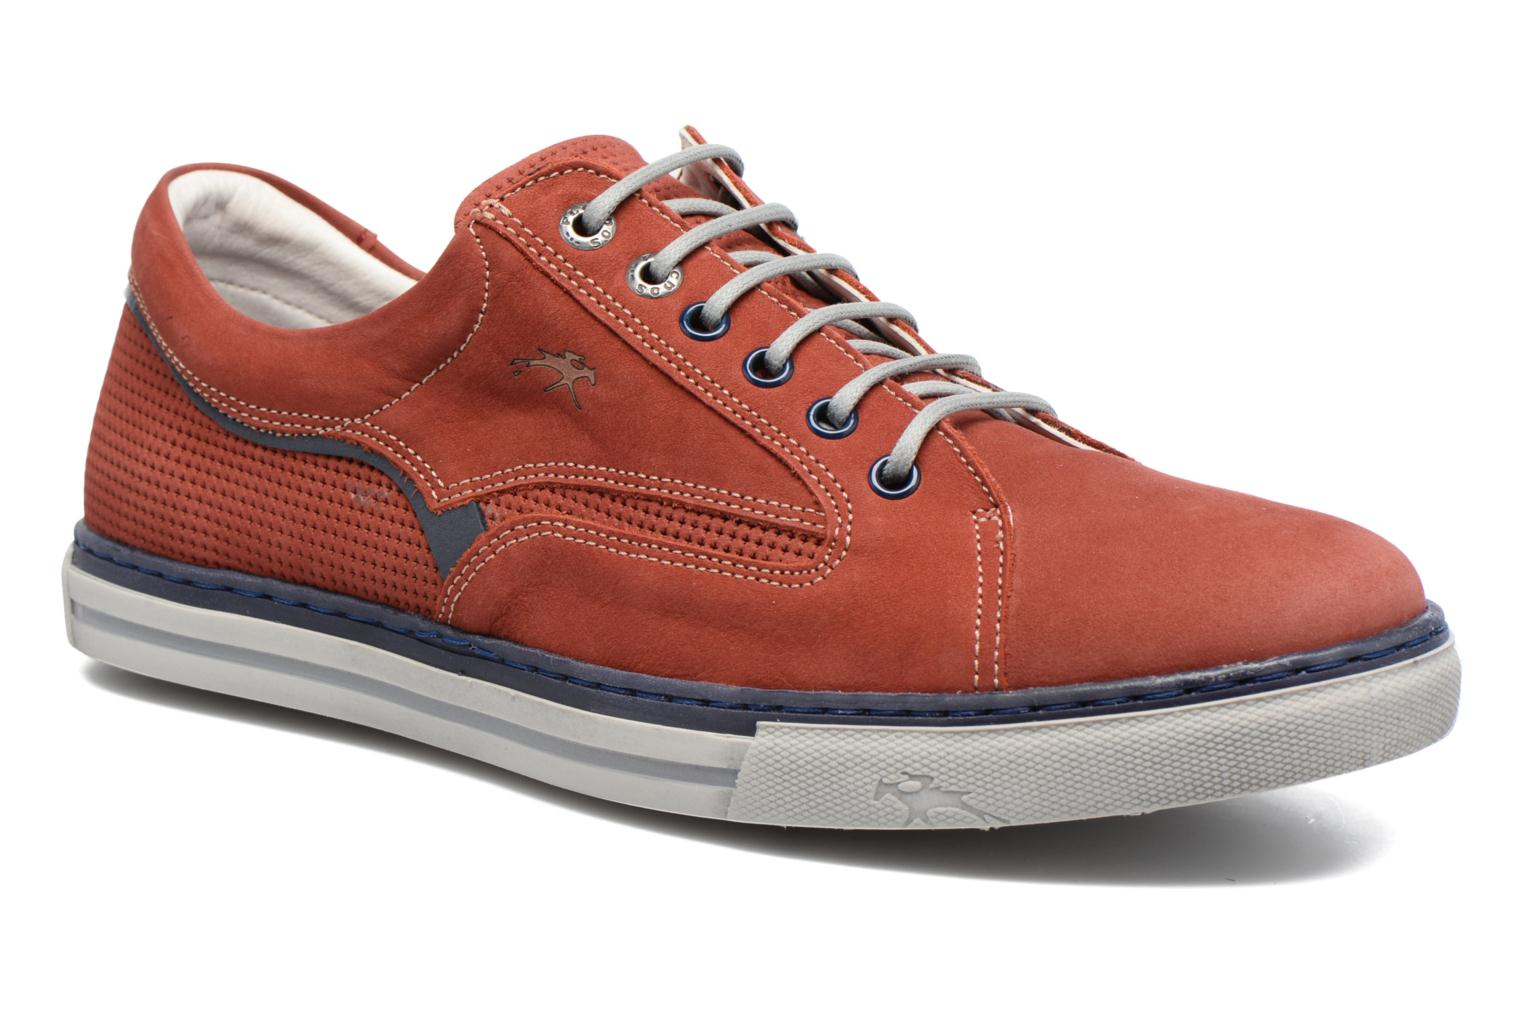 Sneakers Quebec 9372 by Fluchos